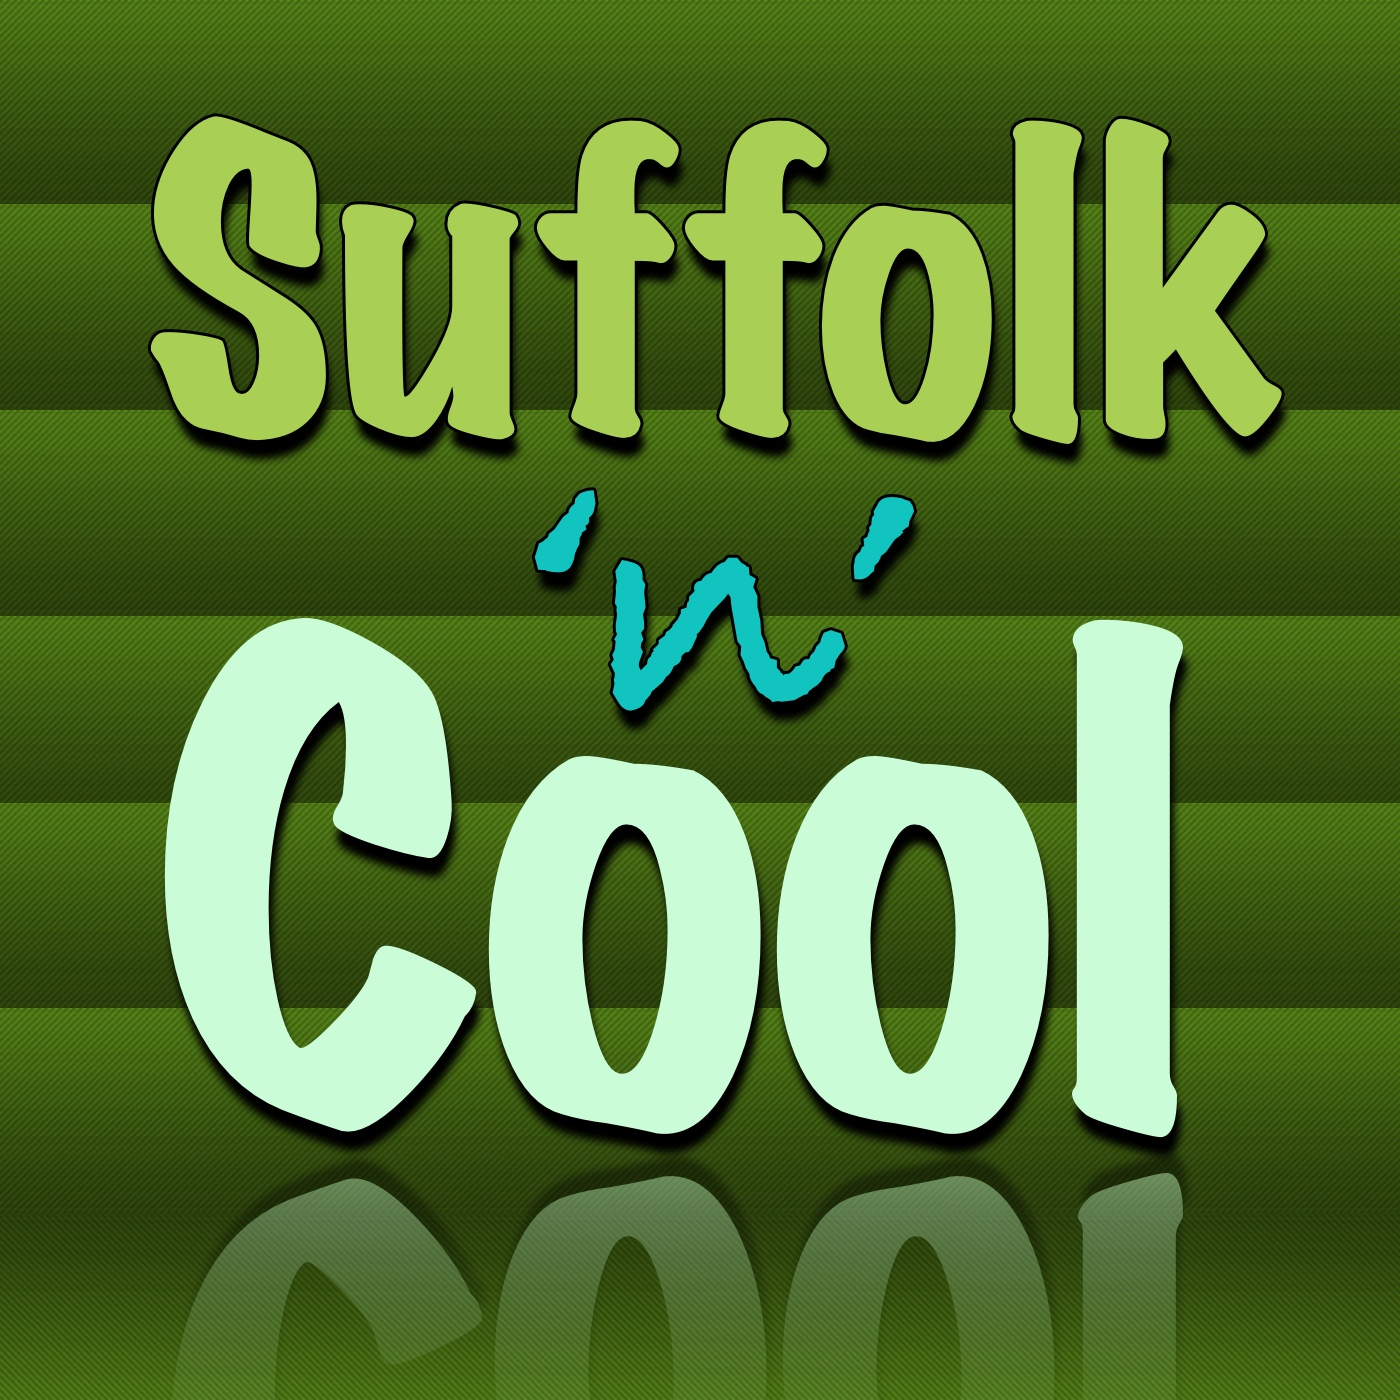 Suffolk 'n' Cool – International Indie Music Podcast